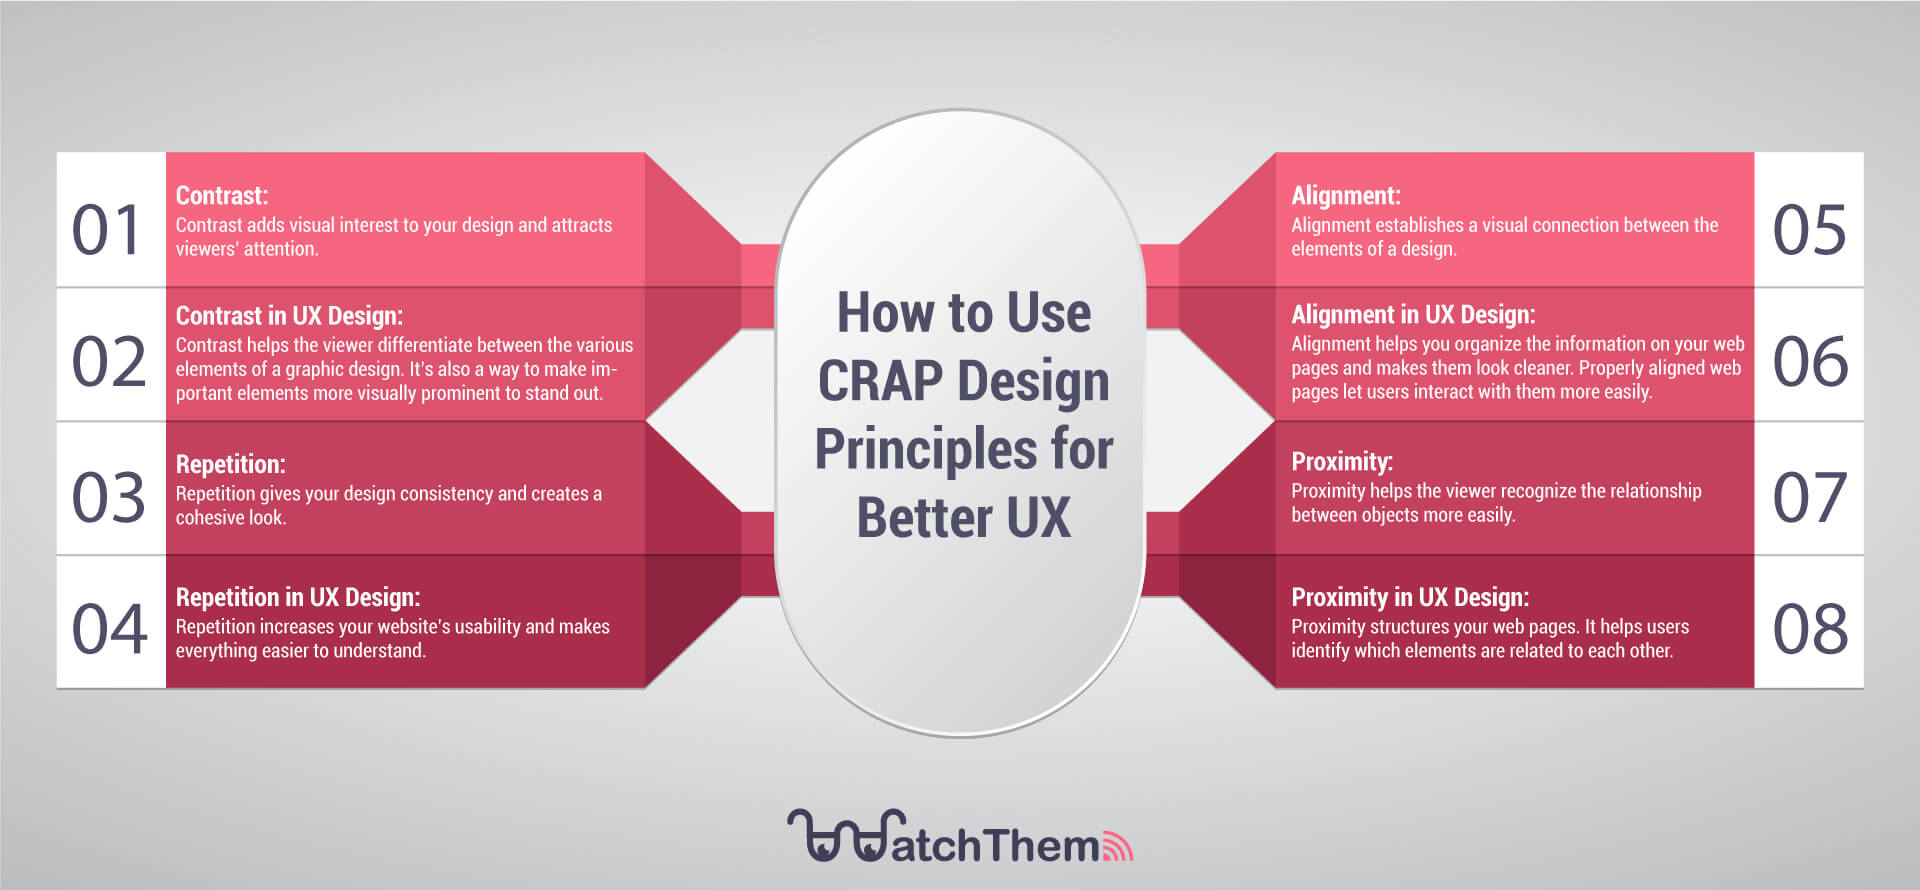 crap design principles and how to use them for a better UX